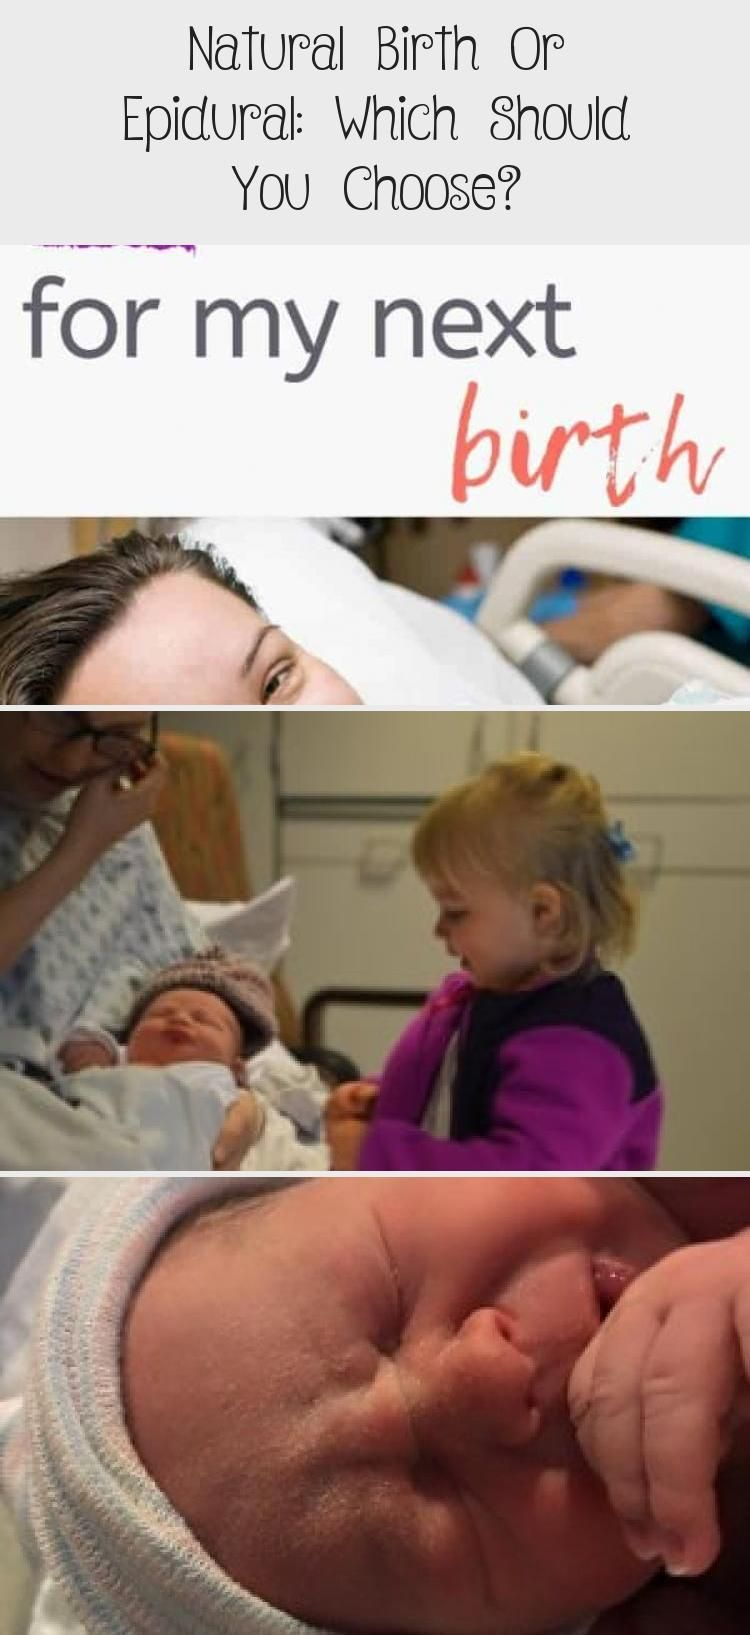 Natural Birth Or Epidural: Which Should You Choose? - health and diet fitness, #babycarequotes #Birt...